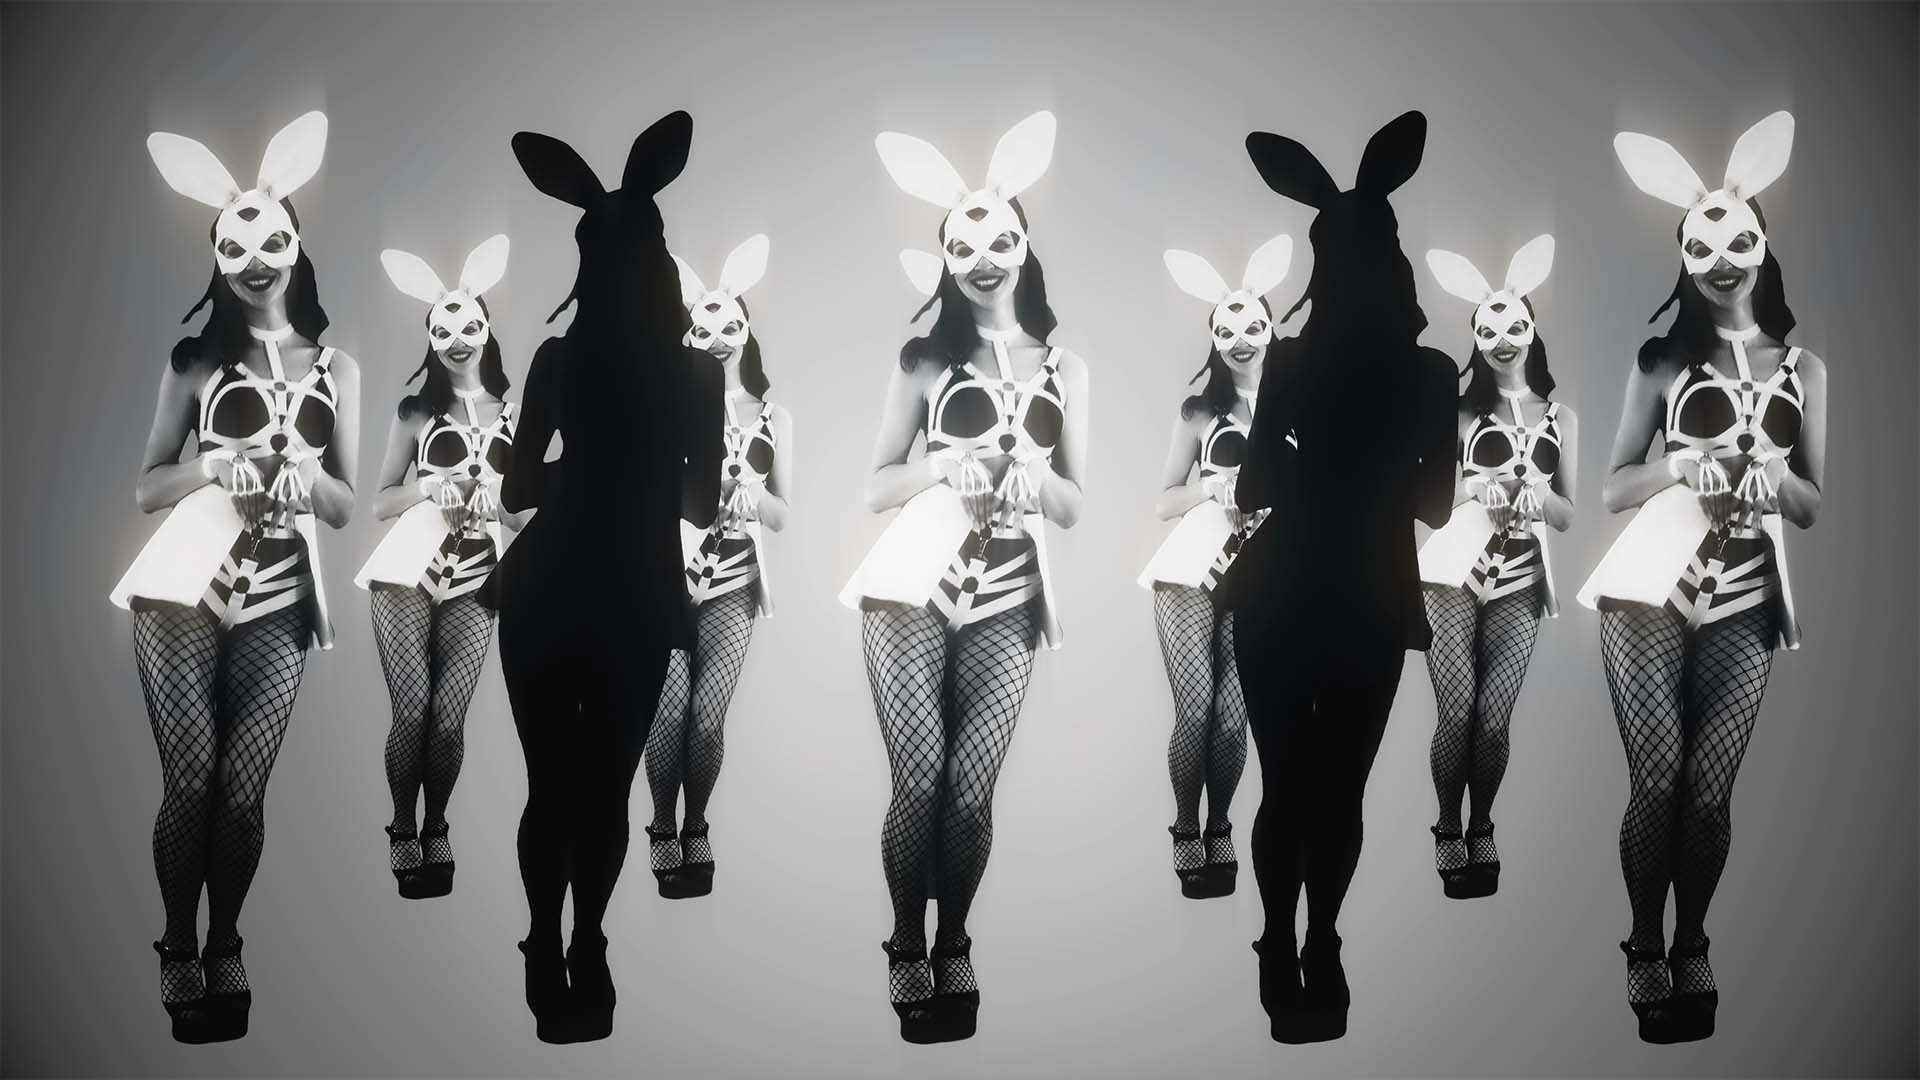 Bunny_Dancing_Girls_On_Black_Motion_Background_VJ_Loop